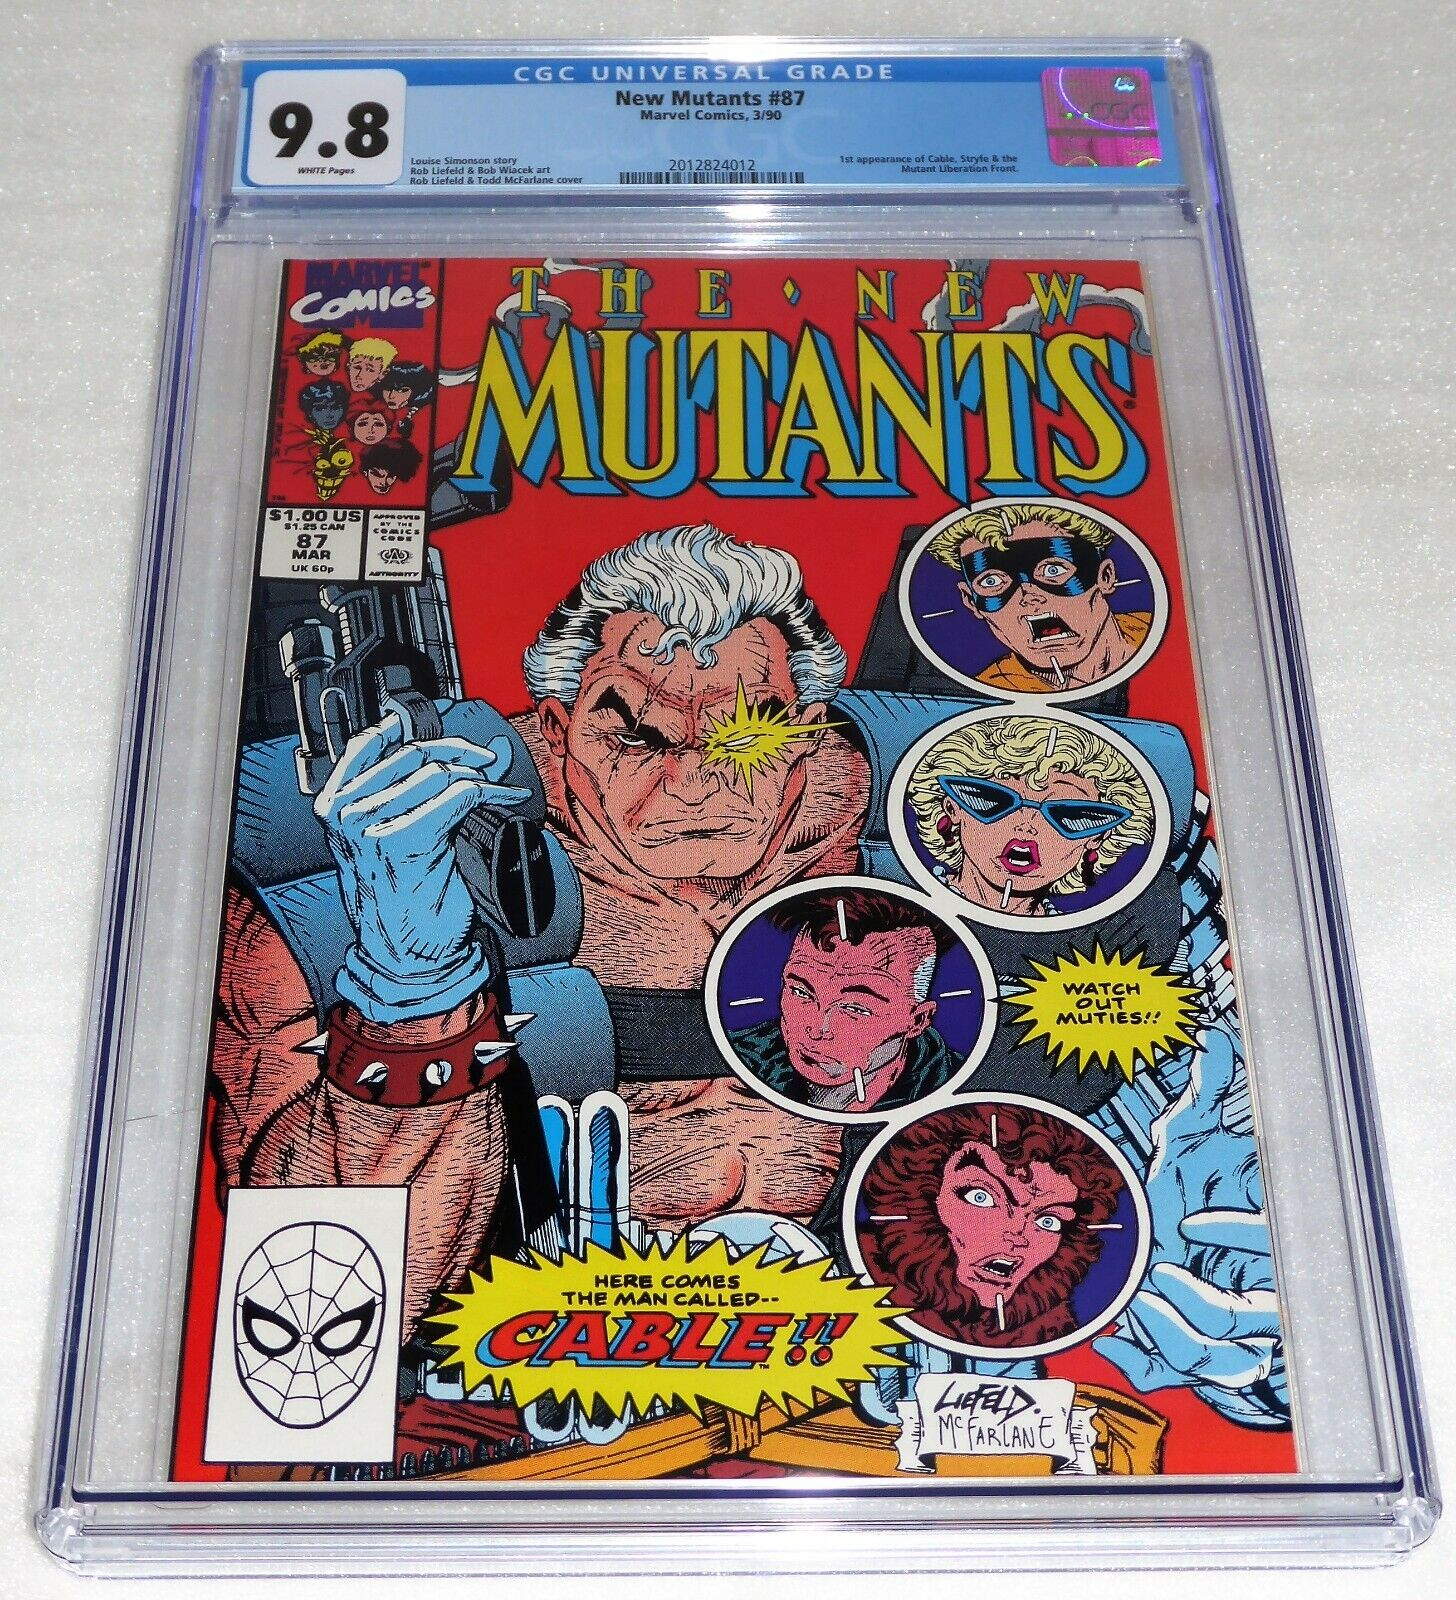 New Mutants #87 1st Cable Appearance CGC Universal Grade Comic 9.8 Marvel POW